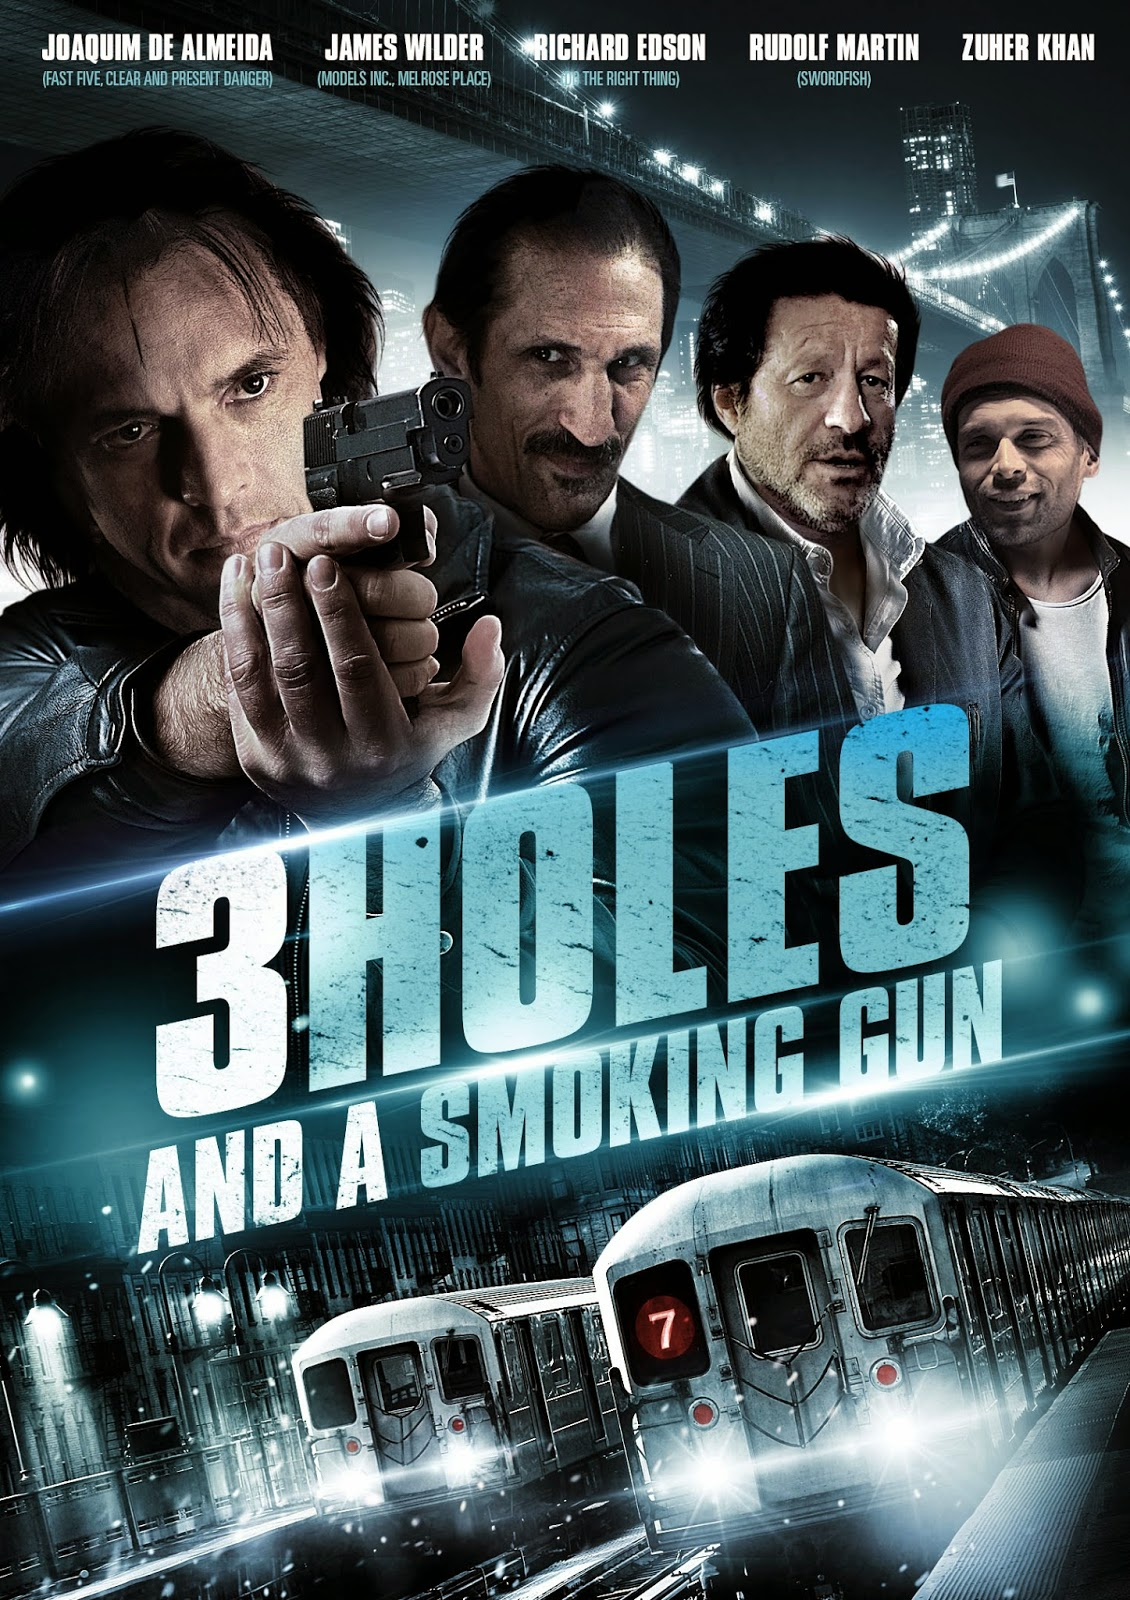 three holes a smoking gun (2014) interviews, james wilder three holes and a smoking gun